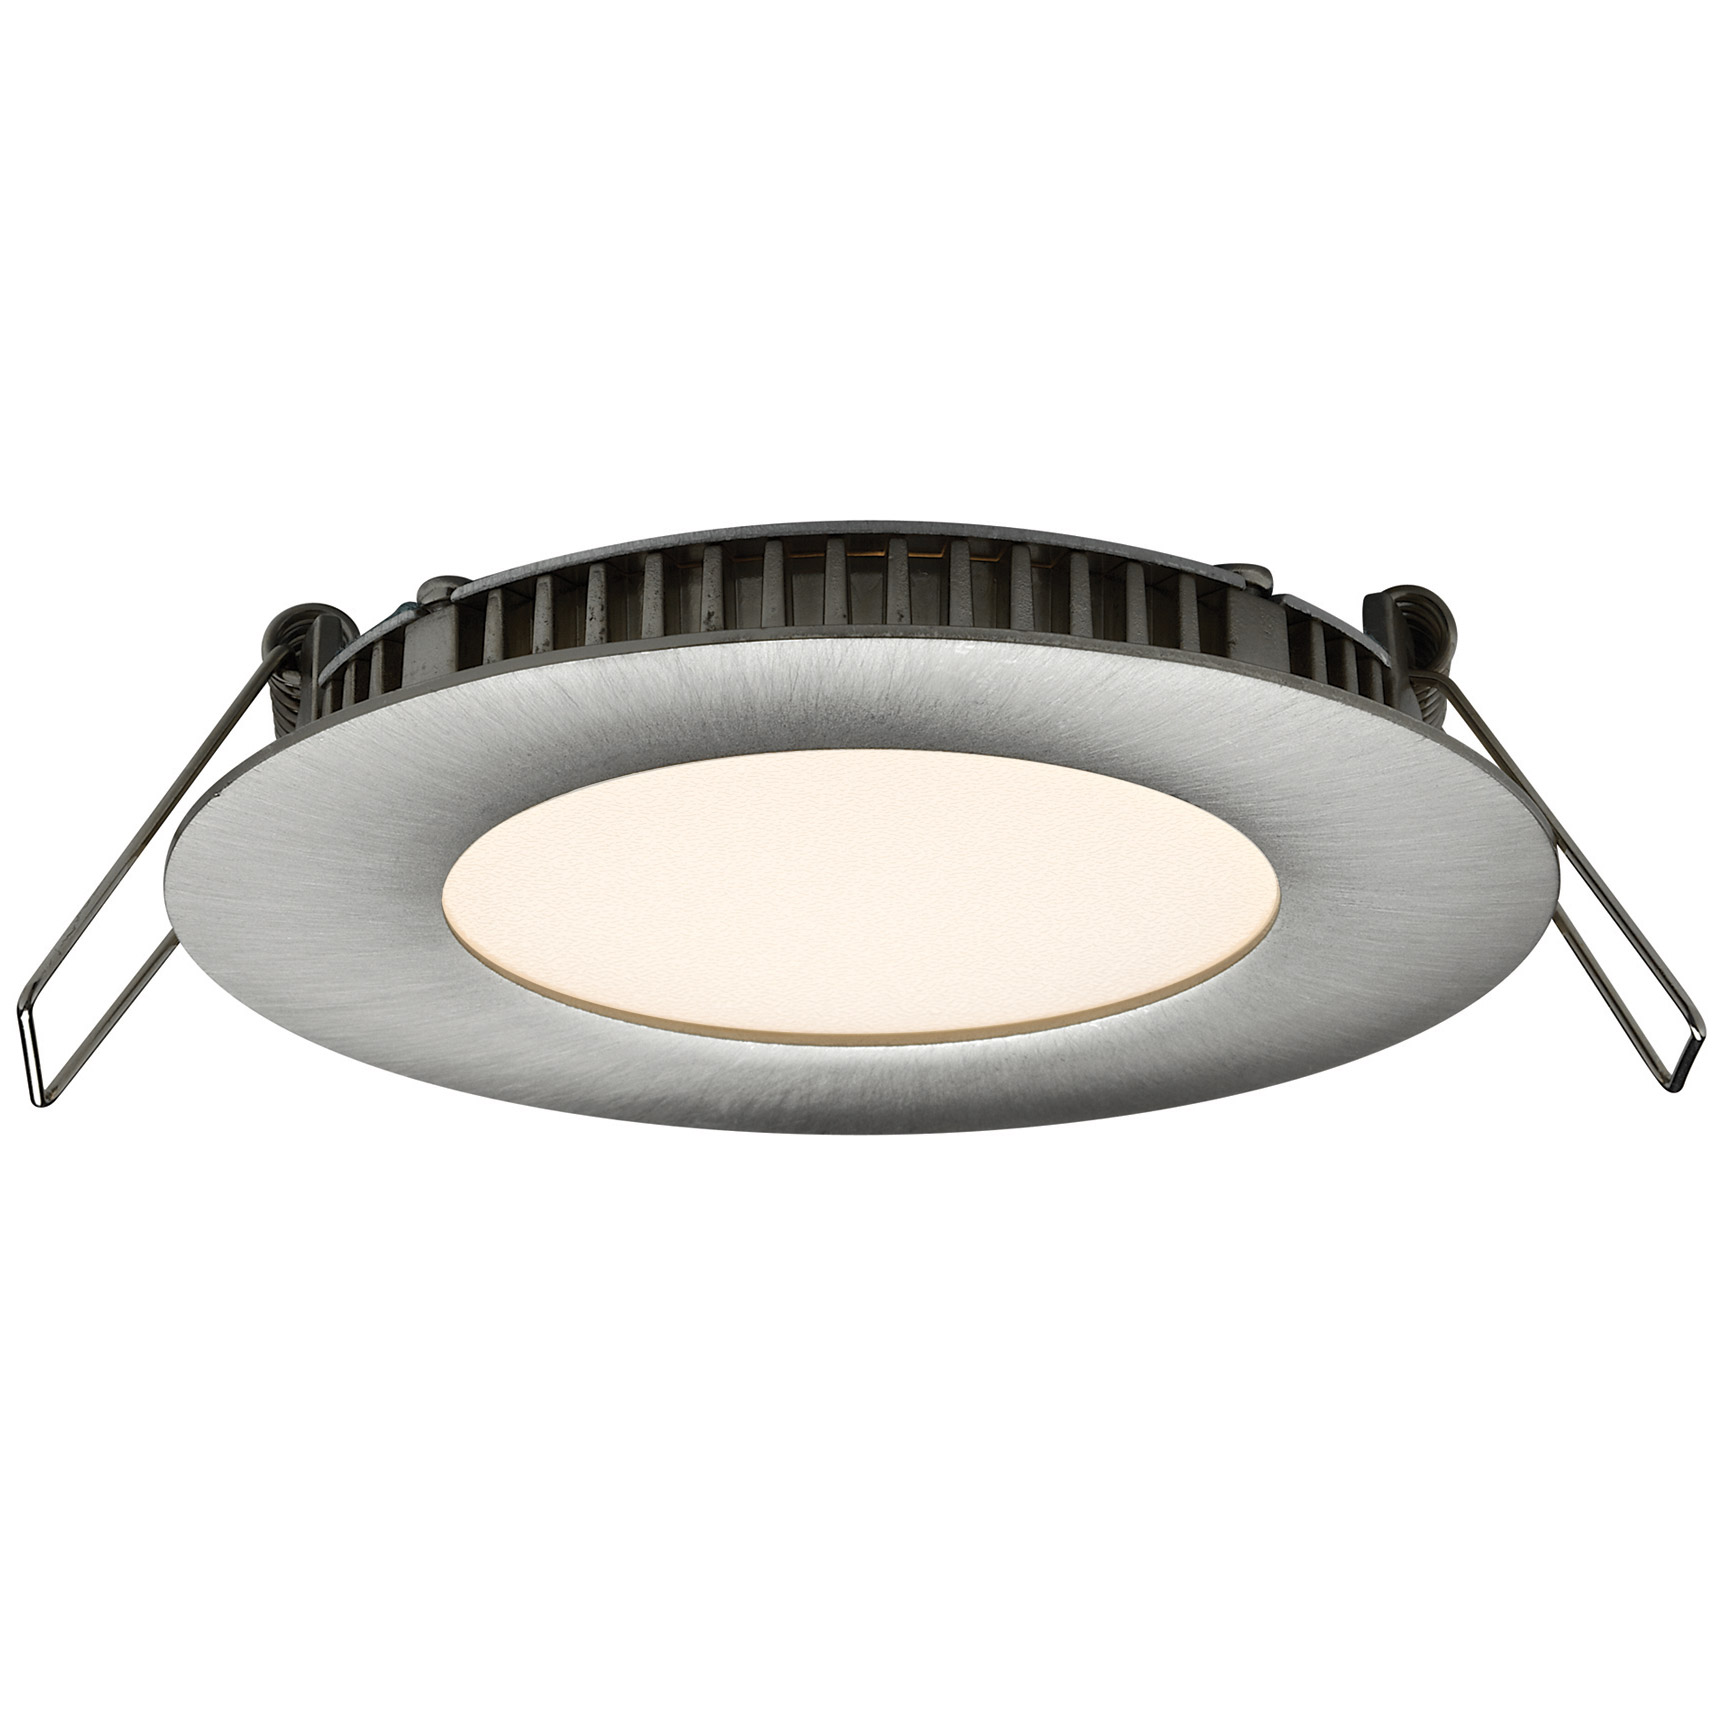 series round led recessed panel lightdals lighting